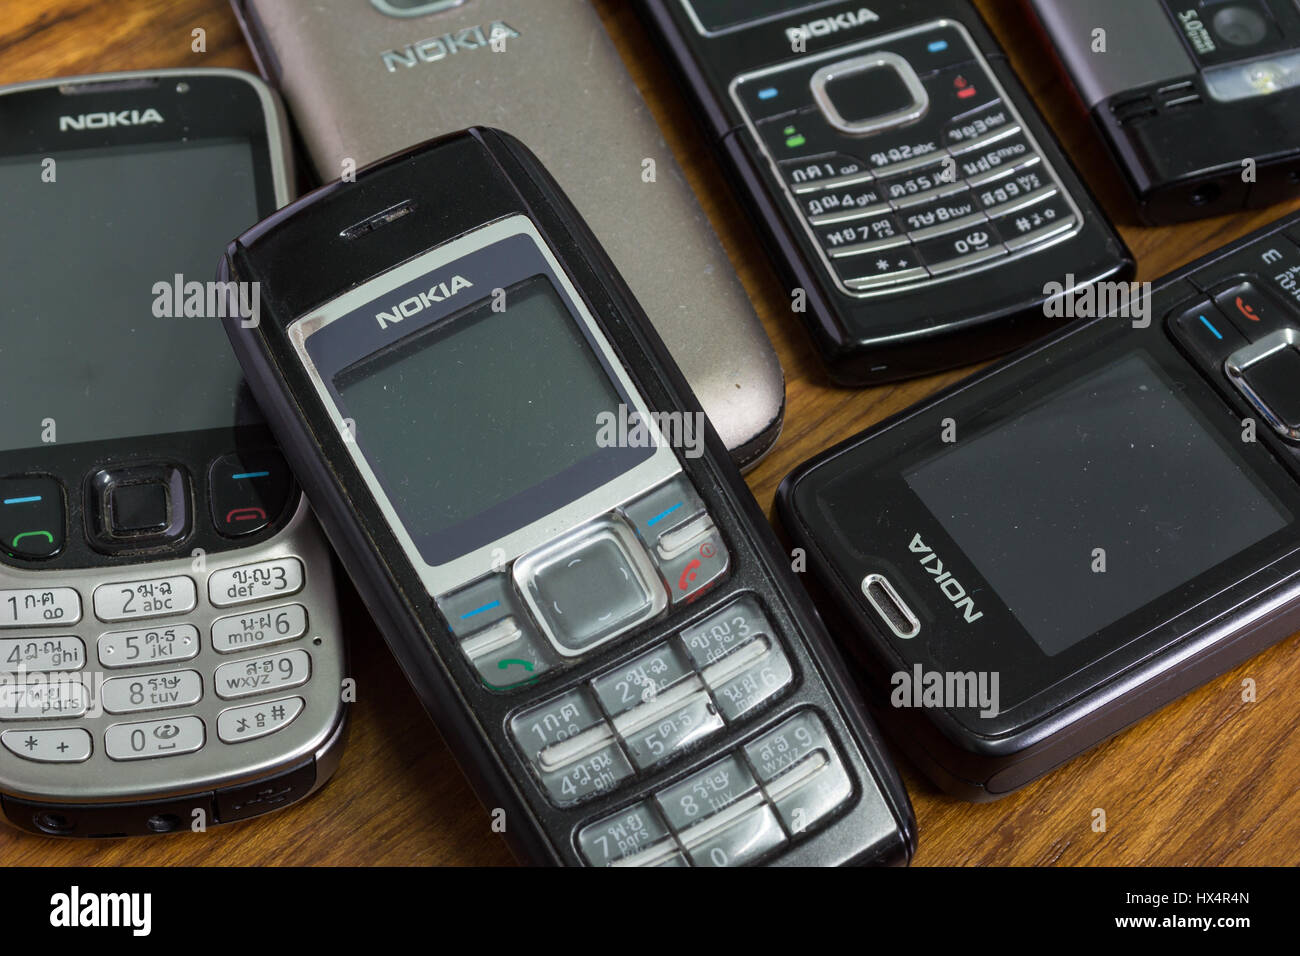 Bangkok, Thailand - March 24, 2017 : Nokia mobile phones on wooden background. - Stock Image